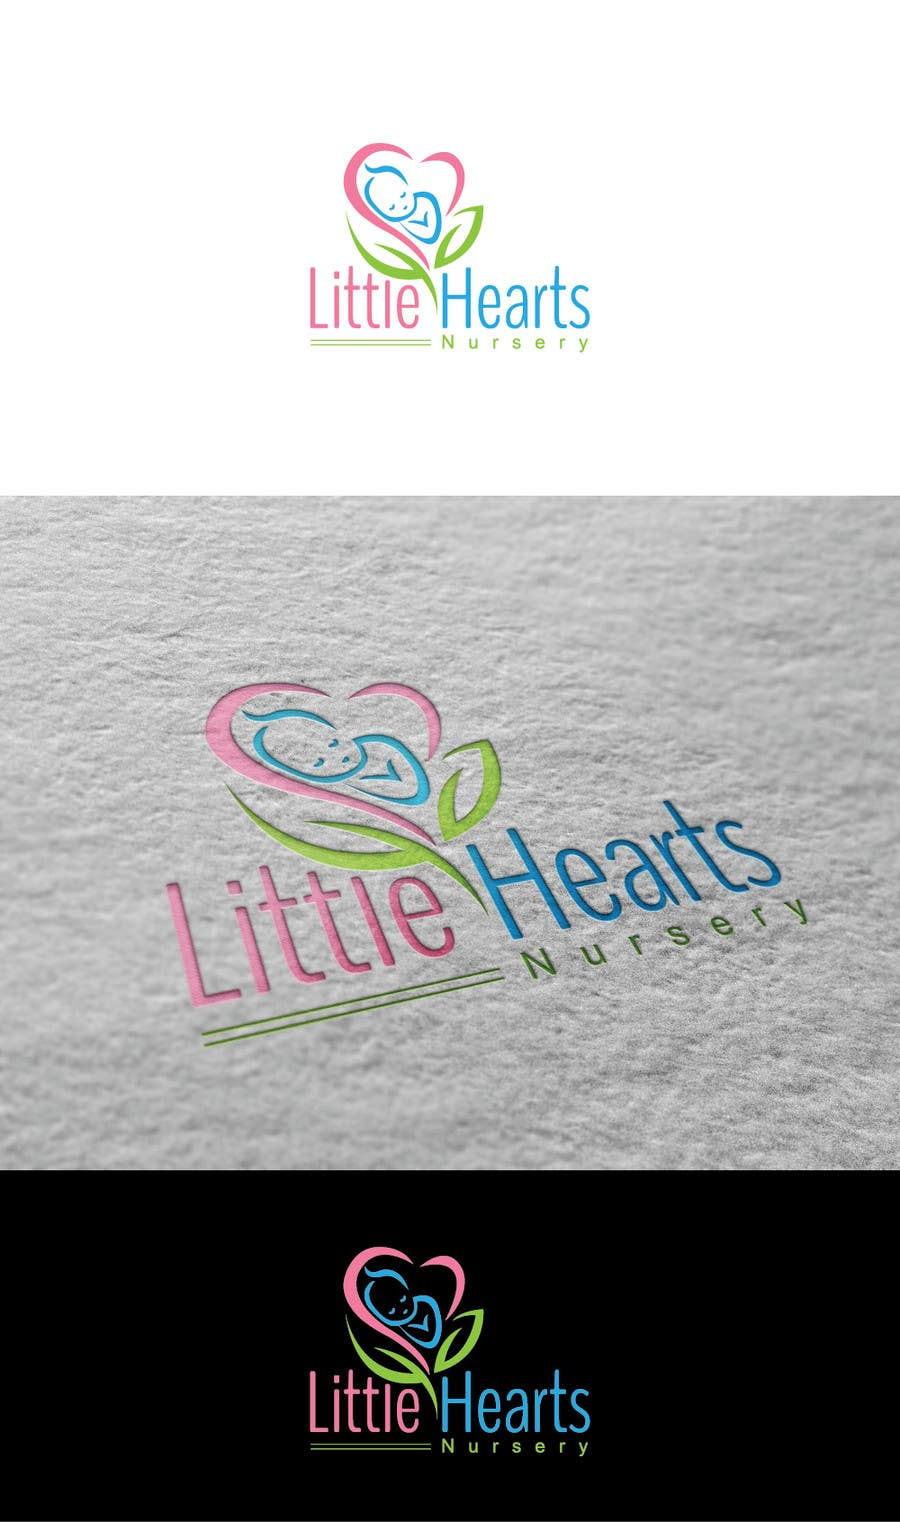 Contest Entry 8 For Little Hearts Nursery Logo